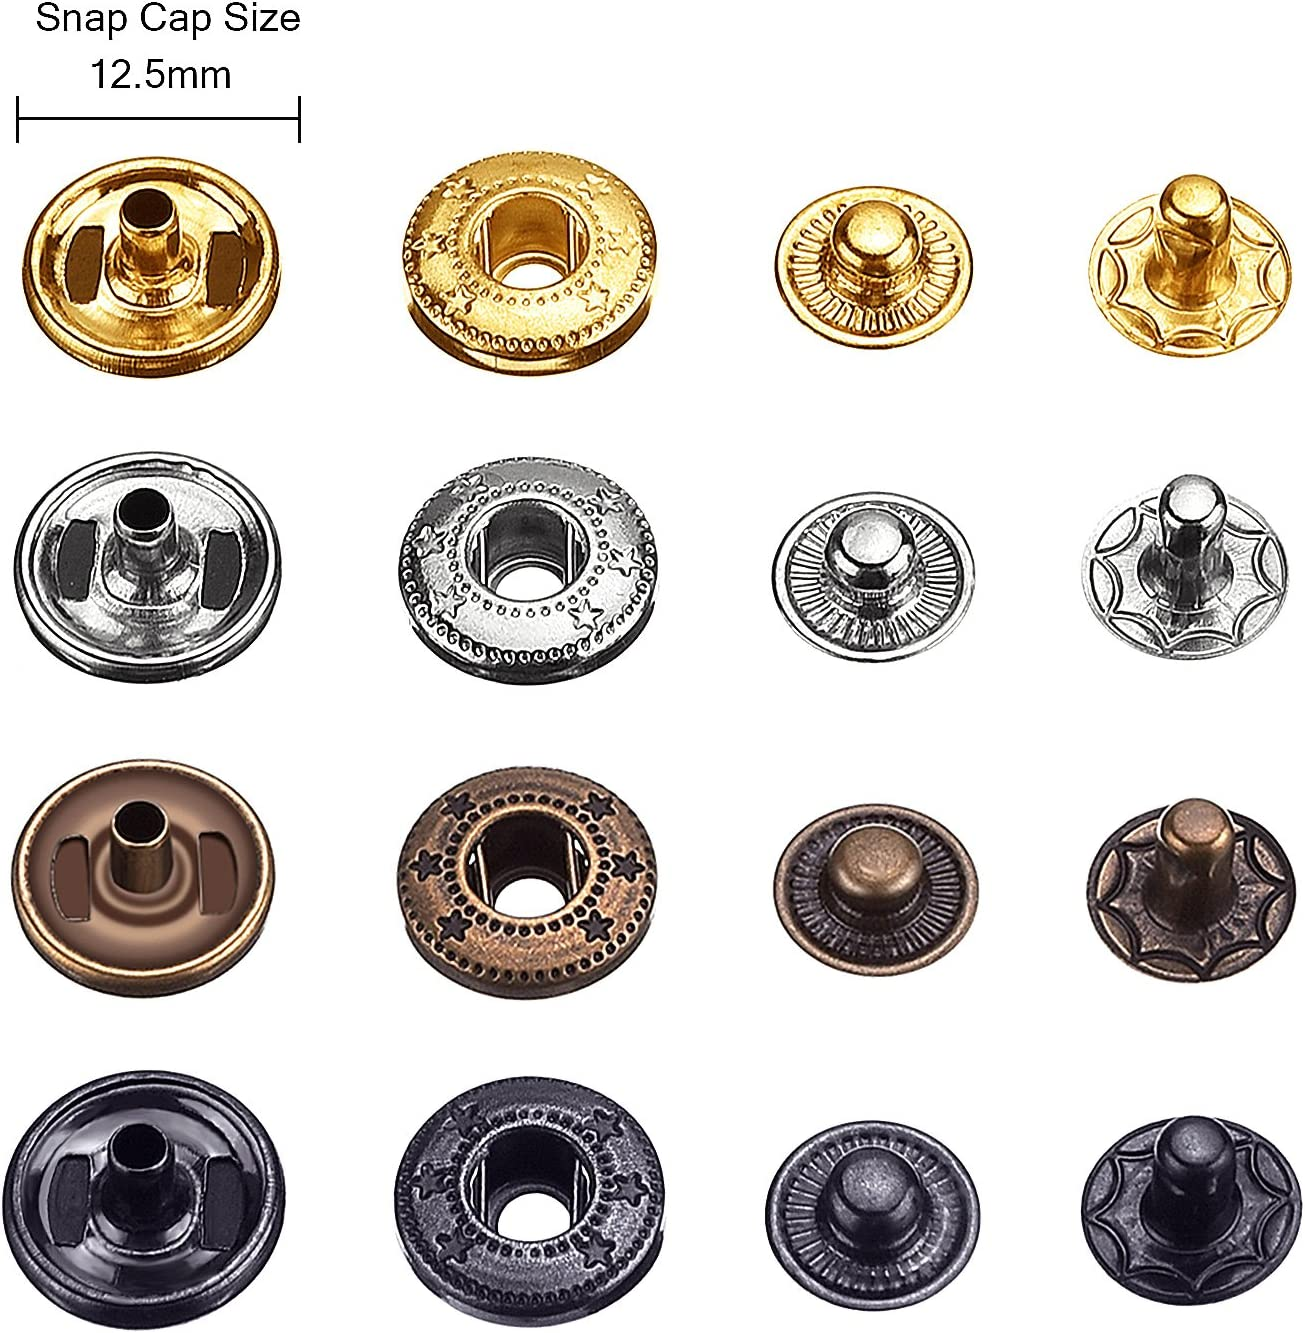 80 Set Snap Fasteners Snaps Button Press Studs with 4 Pieces Clothing Snaps Kit Fixing Tools 12.5 mm in Diameter ,Metal Snaps for Clothing Leather Craft Bracelet Jeans Wear Jacket Bags Belt